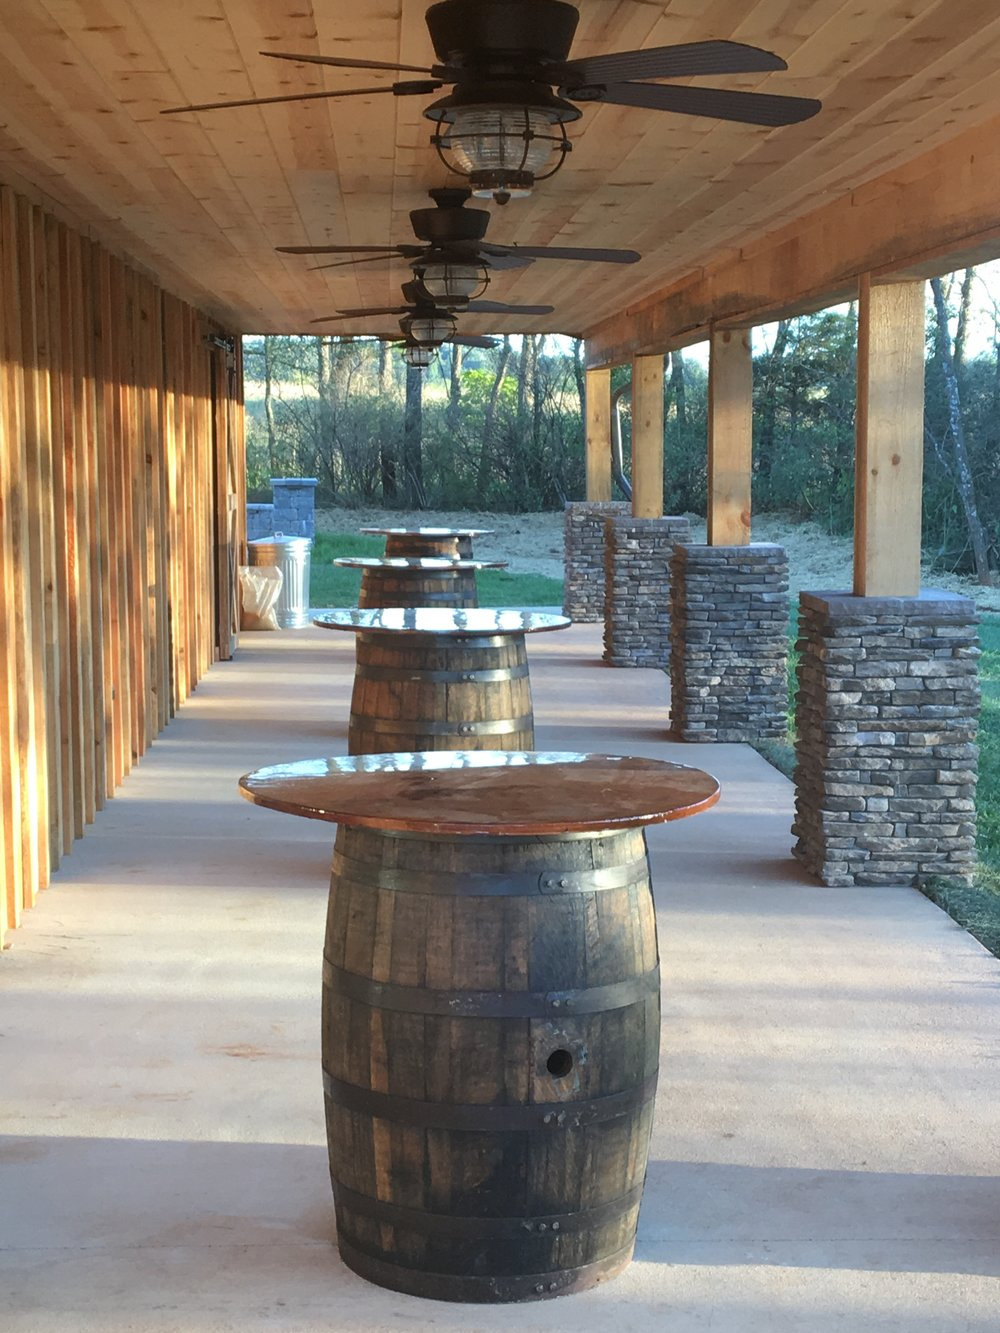 Covered patio area with barrels